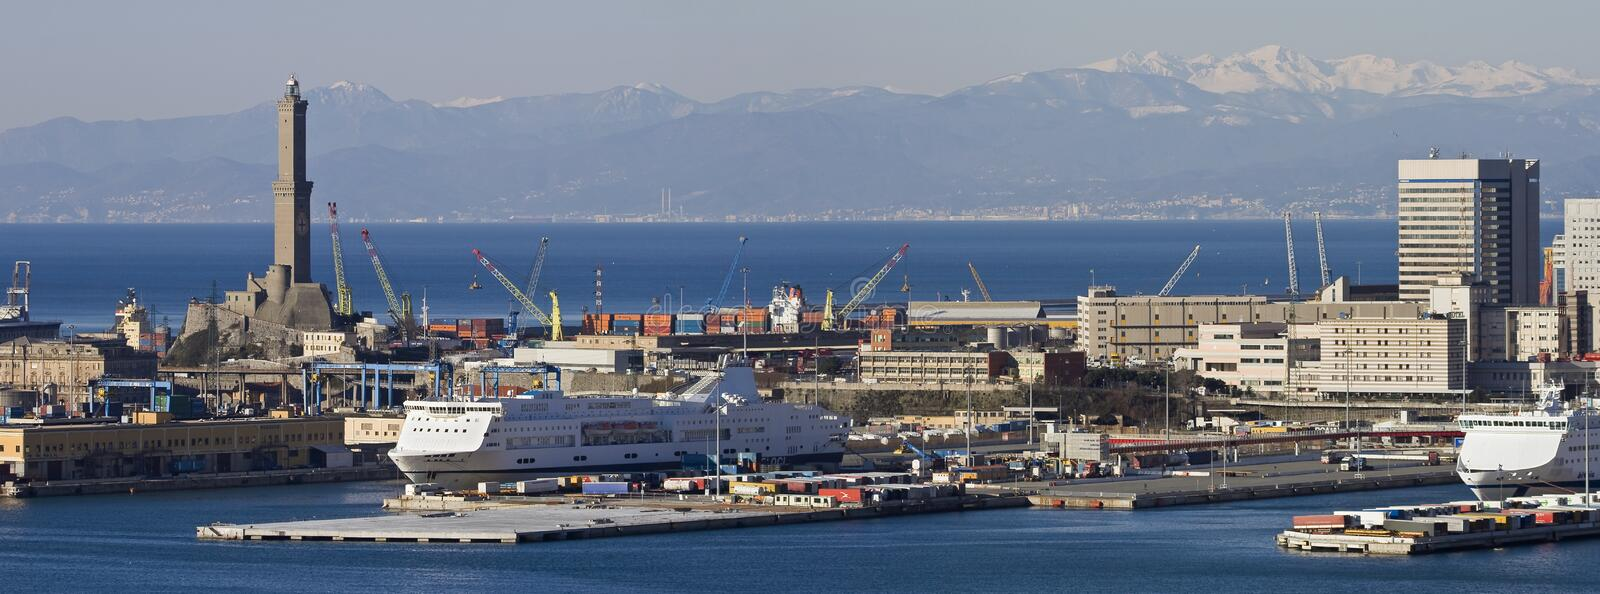 Download Port of Genoa stock image. Image of buildings, port, ferry - 8188425